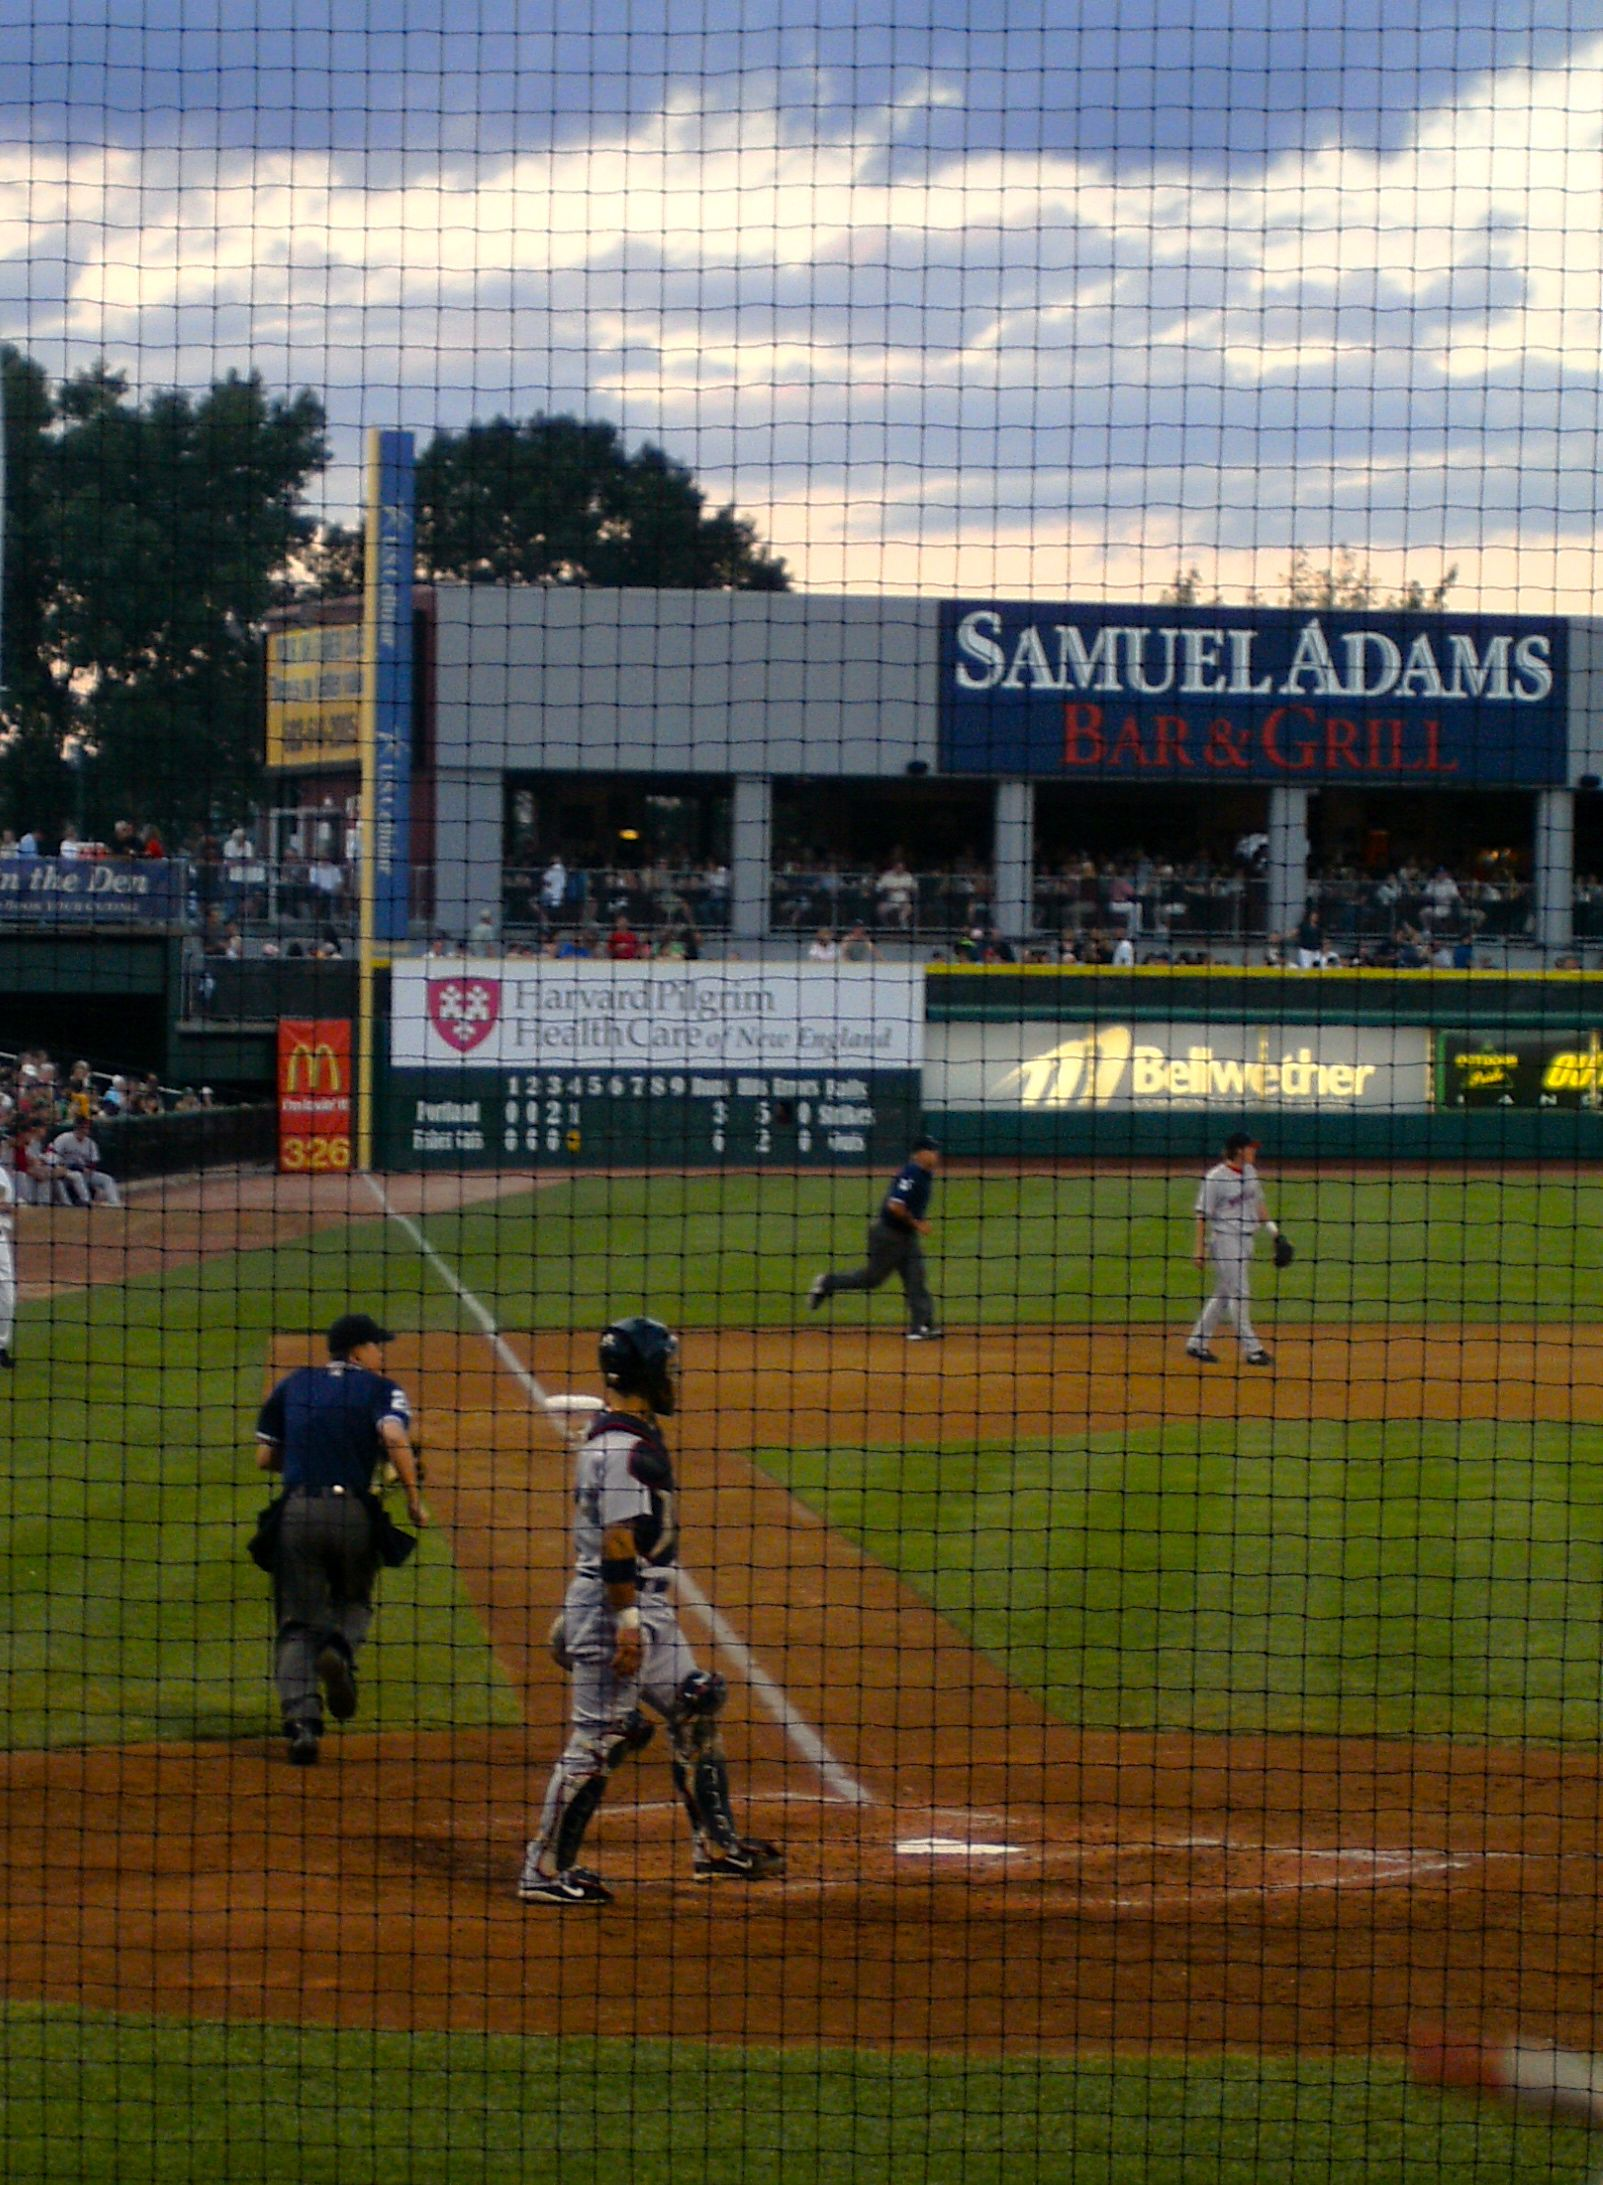 Minor League Baseball In Manchester N H Home Of The Fischer Cats 2008 Minor League Baseball Manchester Nh Granite State